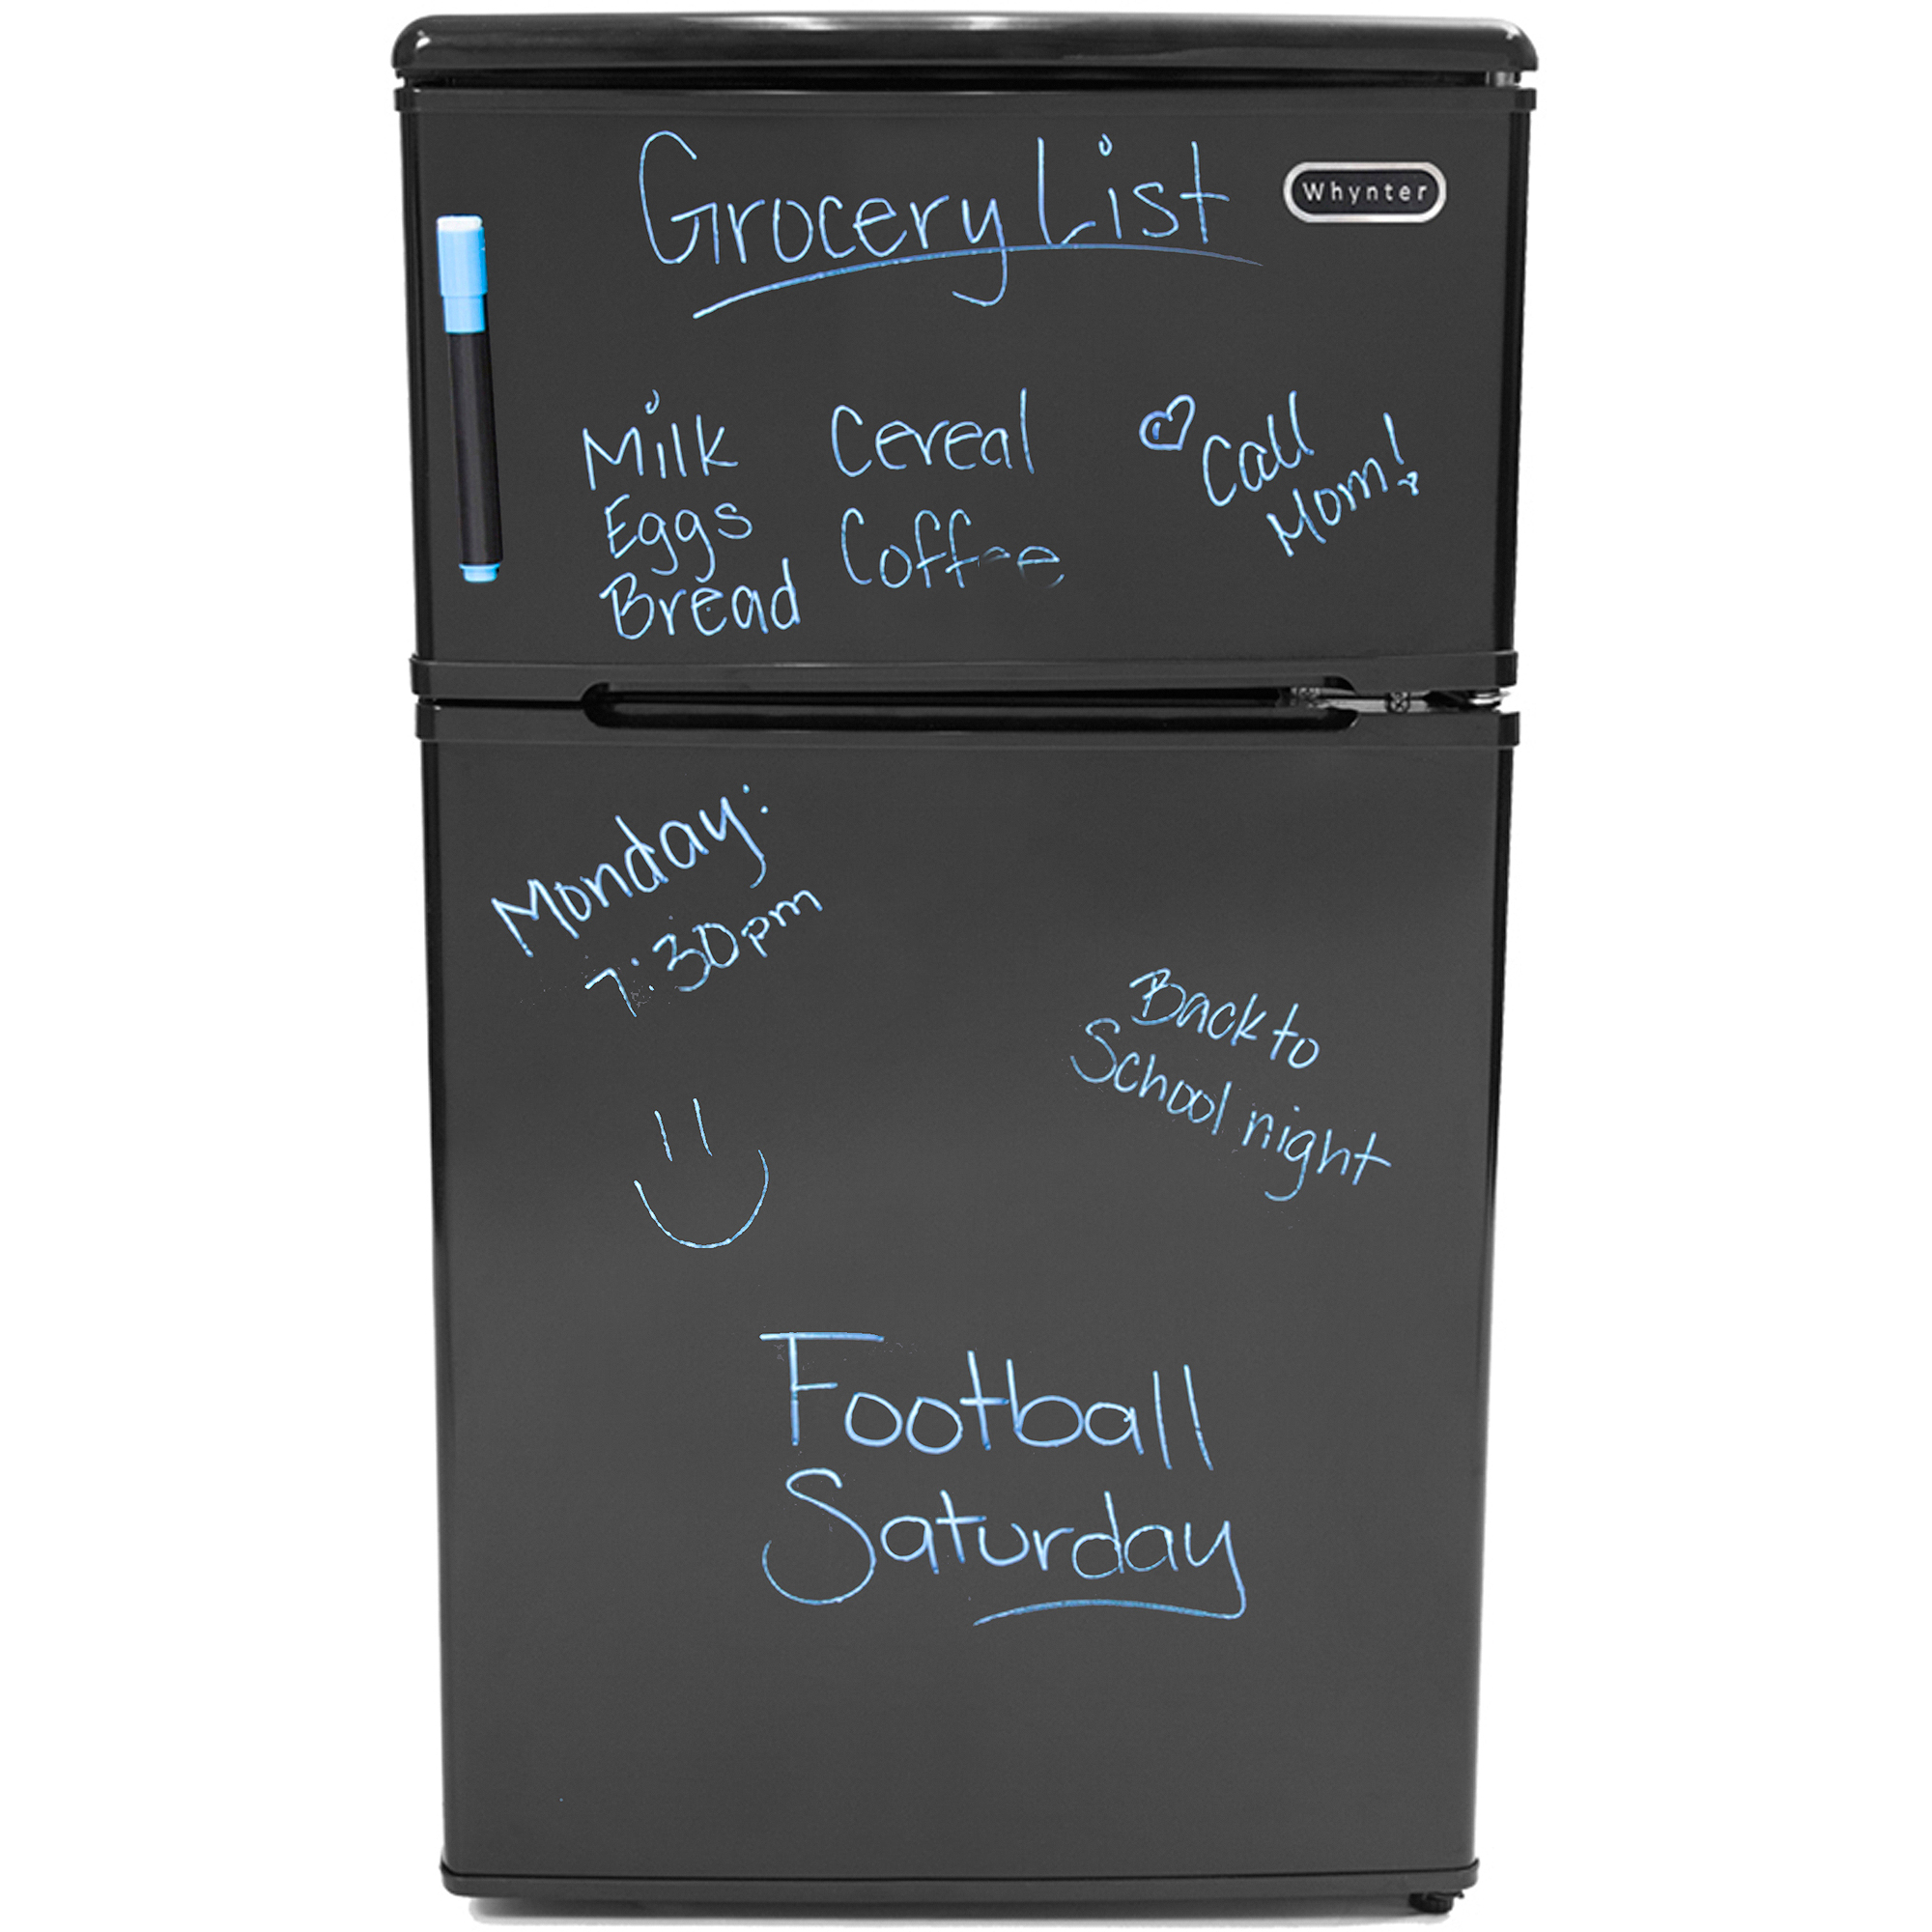 Whynter MRF-310DB Energy Star Compact Refrigerator/Freezer, 3.1 cu ft, Black